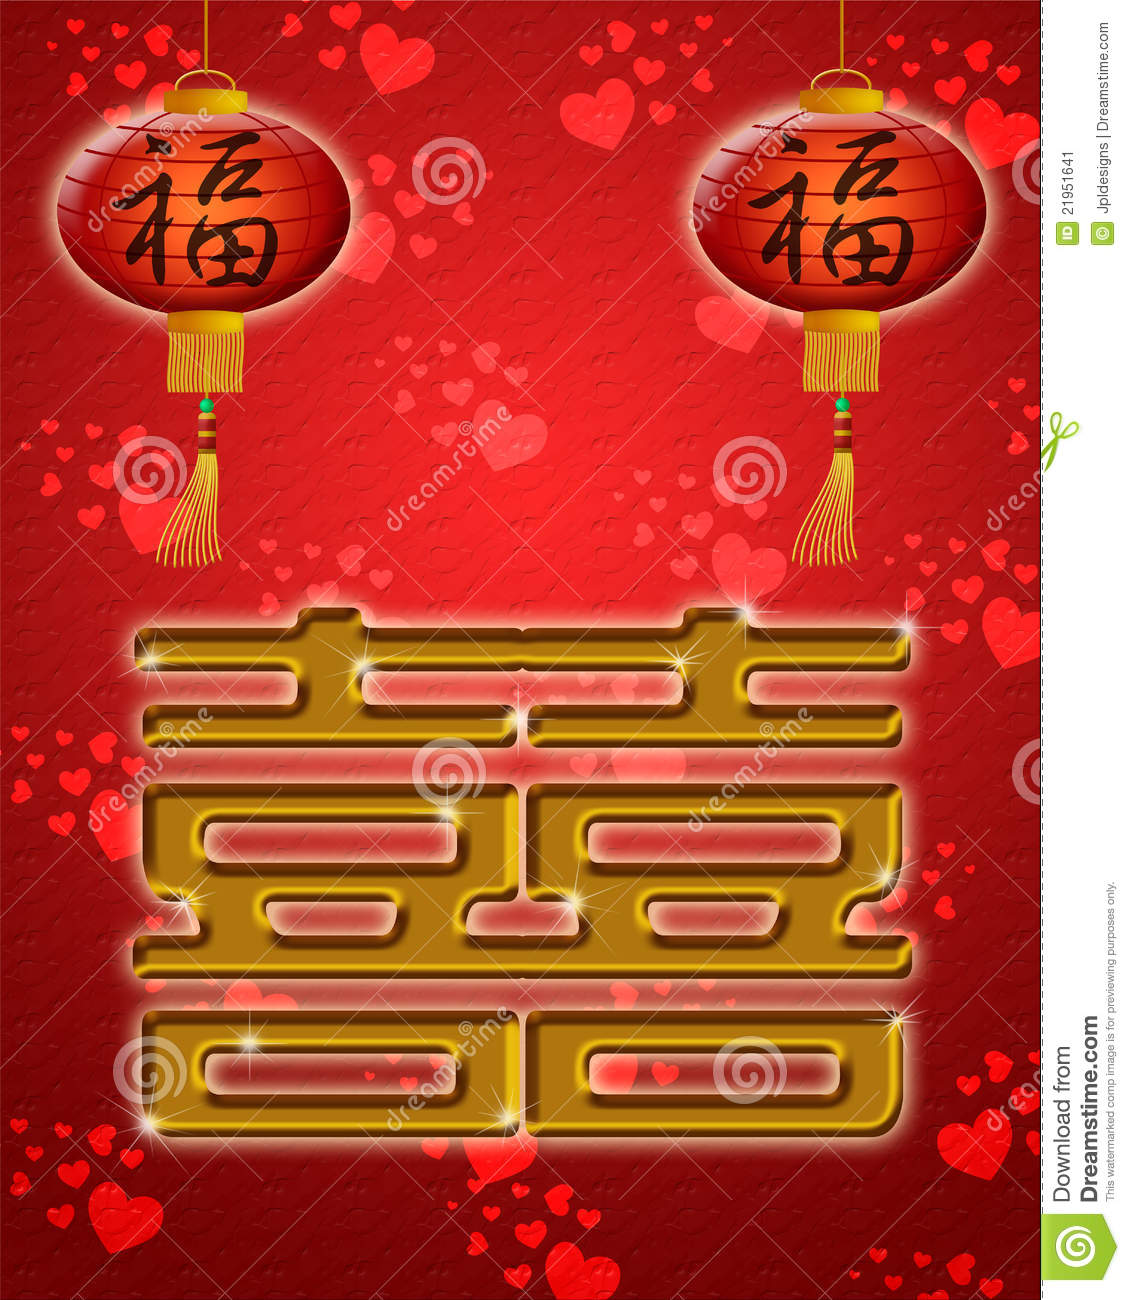 Chinese Wedding Double Happiness Symbol with Lanterns on Red Hearts ...